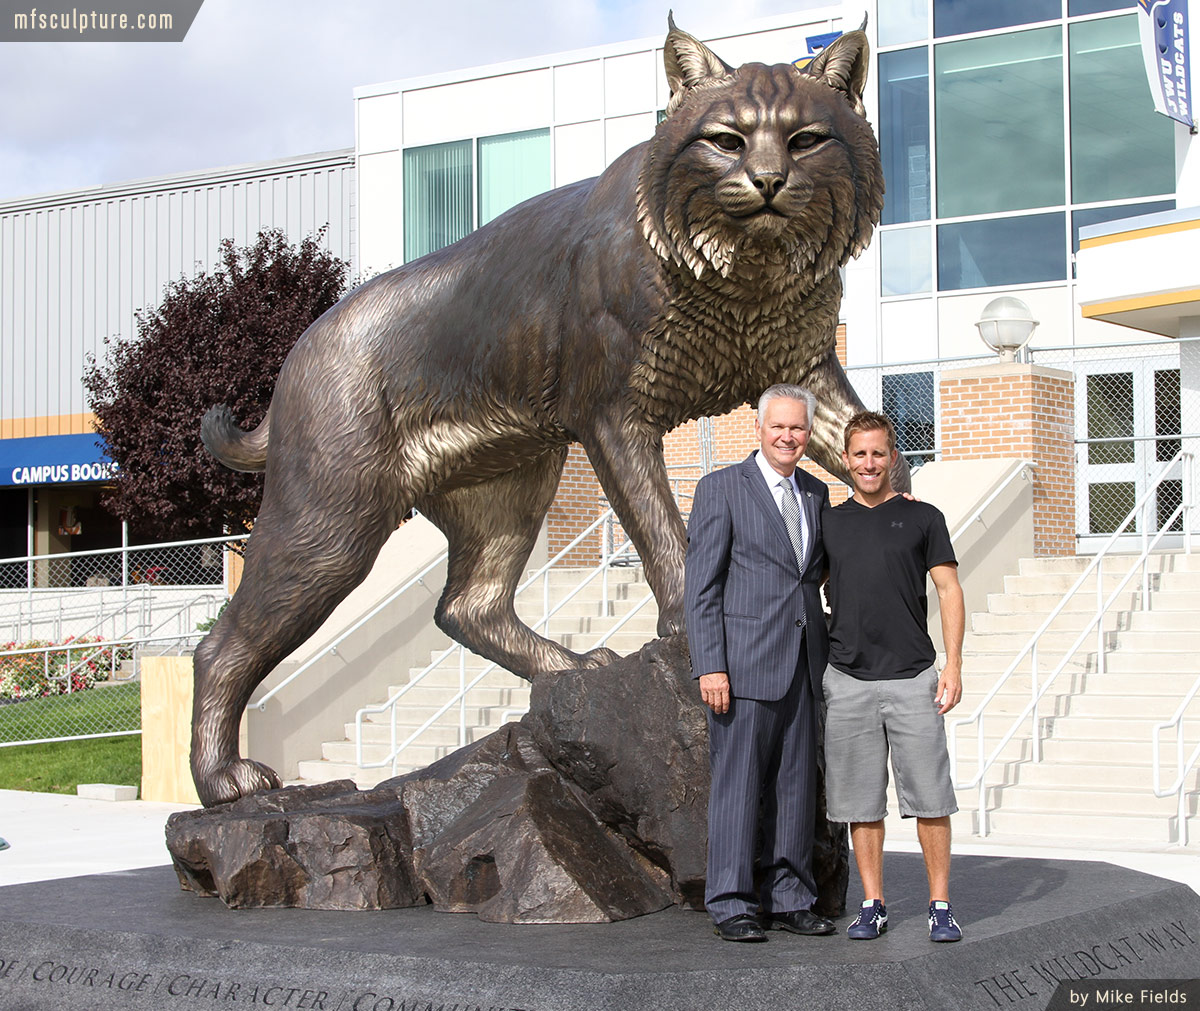 Wildcat Statue University Mascot Monument Art 3